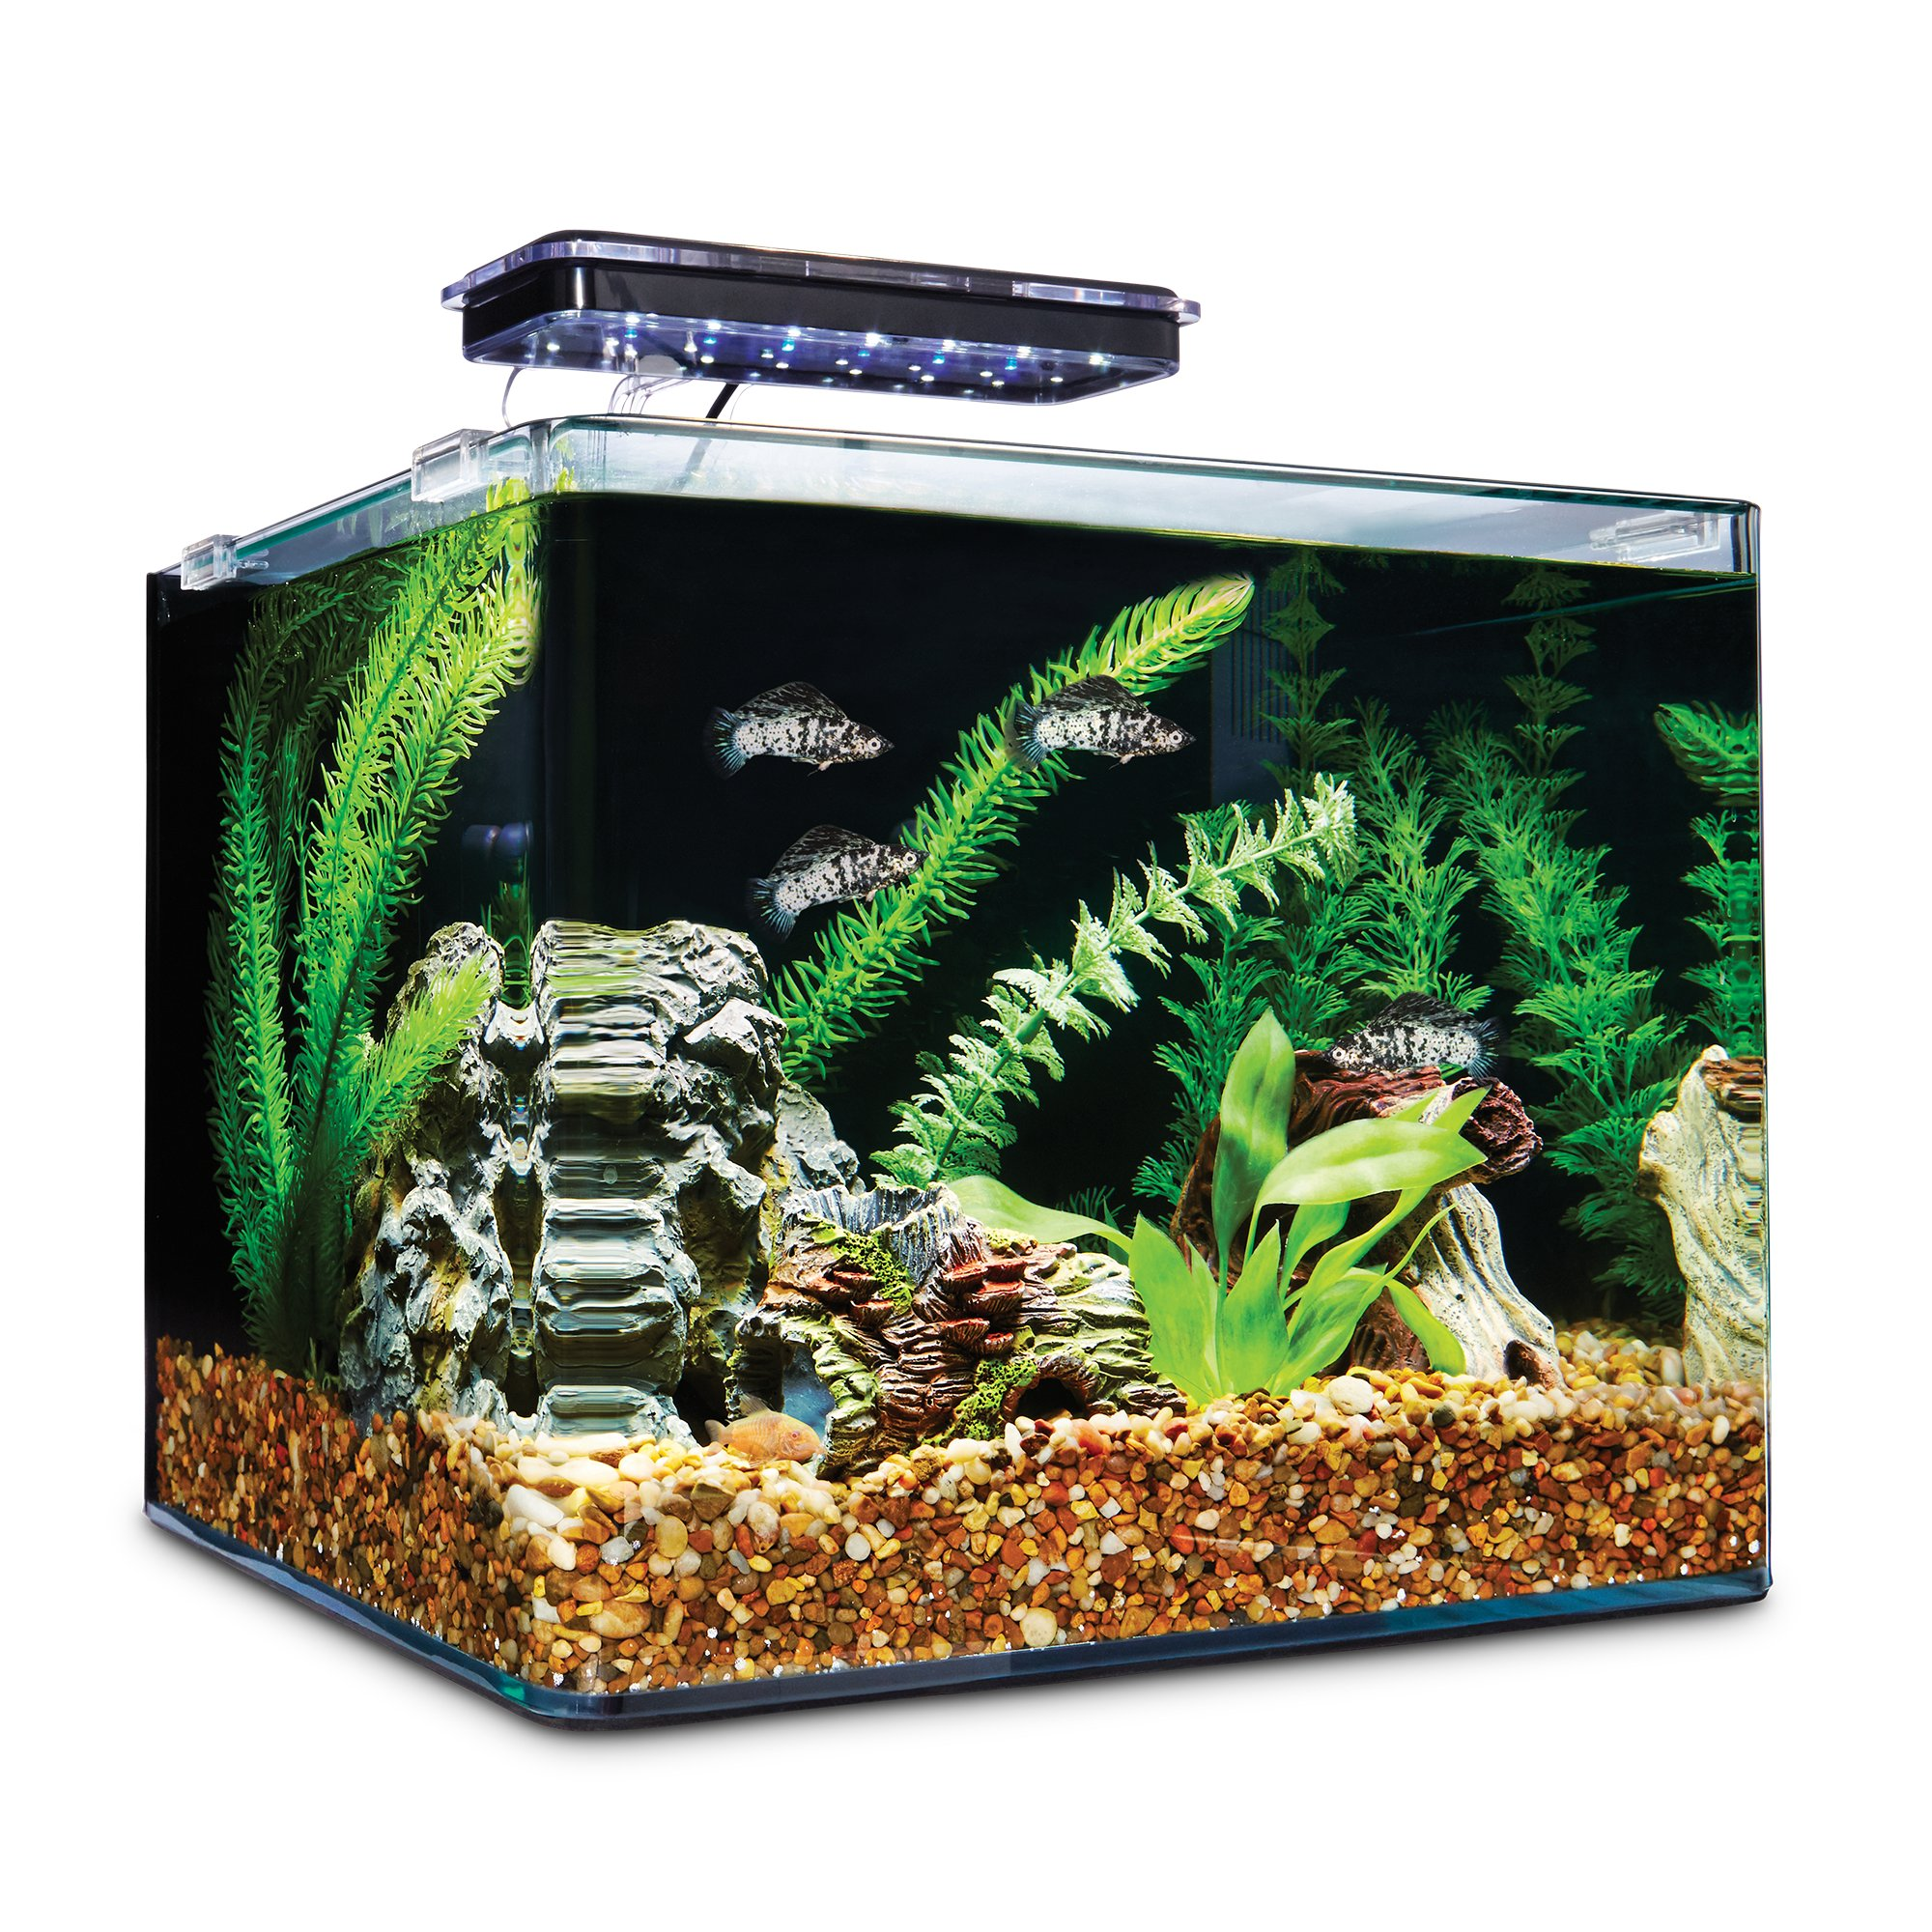 Imagitarium frameless freshwater aquarium kit petco for Betta fish tanks petco